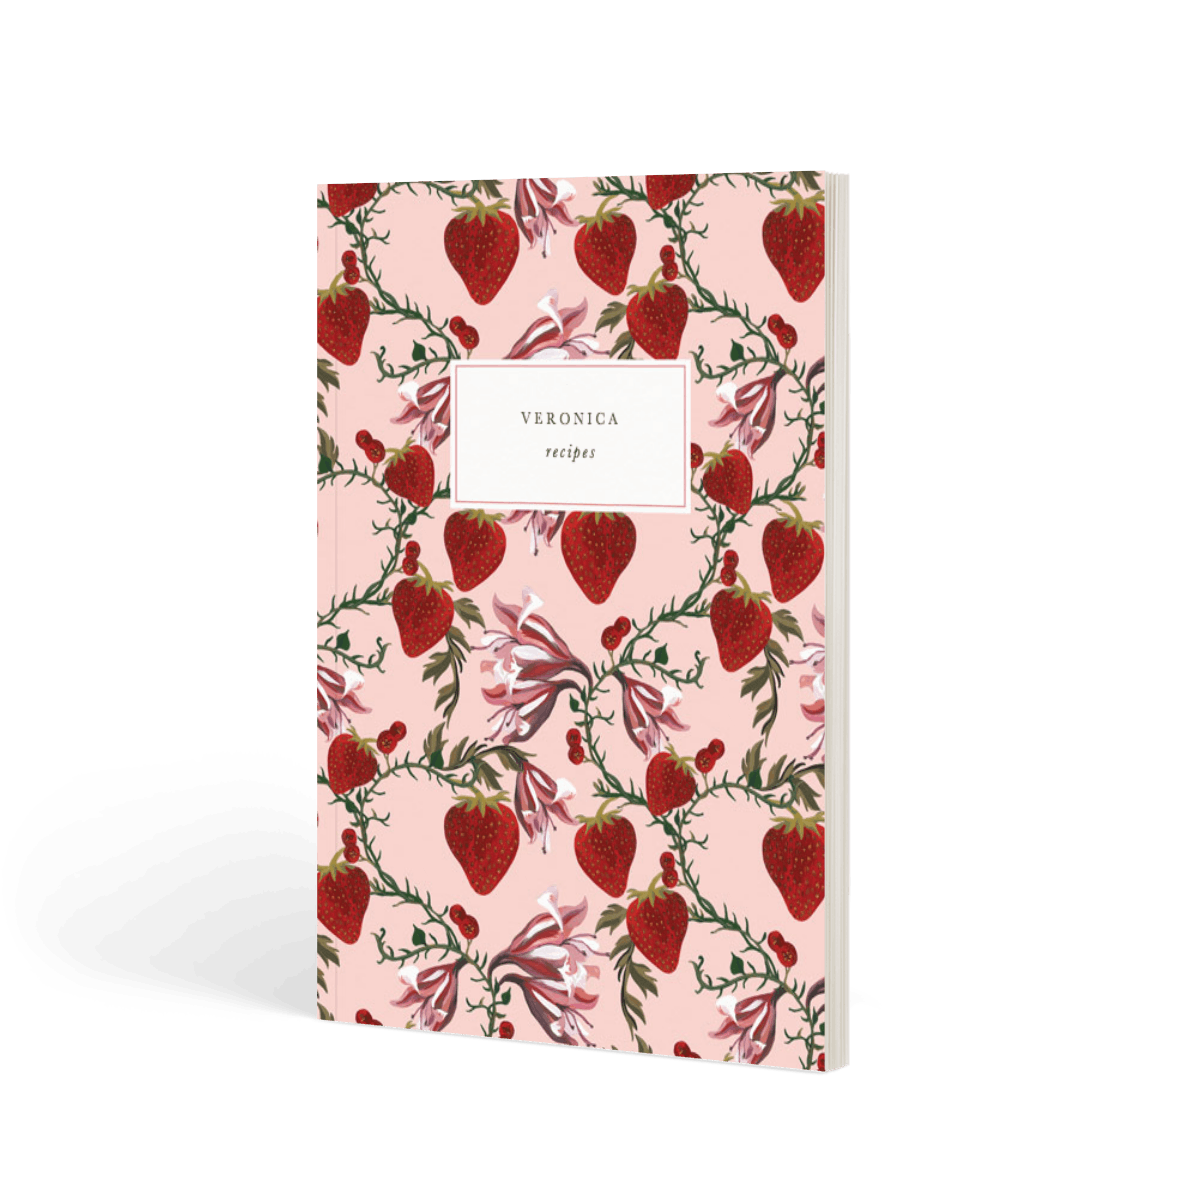 Https%3a%2f%2fwww.papier.com%2fproduct image%2f49653%2f6%2fstrawberry floral 11253 avant 1539706892.png?ixlib=rb 1.1